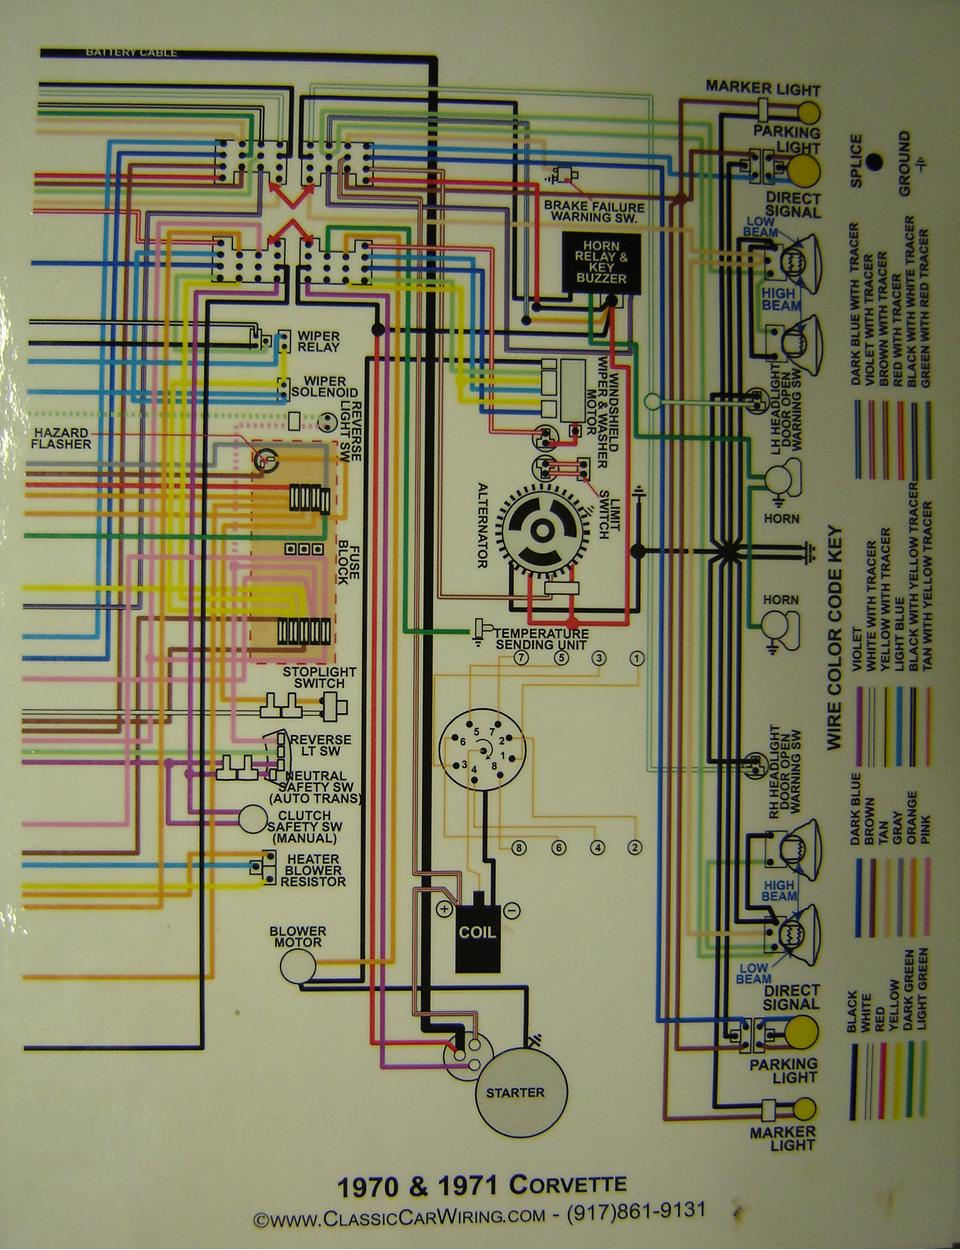 1970 71 corvette color wiring diagram B chevy diagrams GMC Engine Wiring Harness Diagram at edmiracle.co